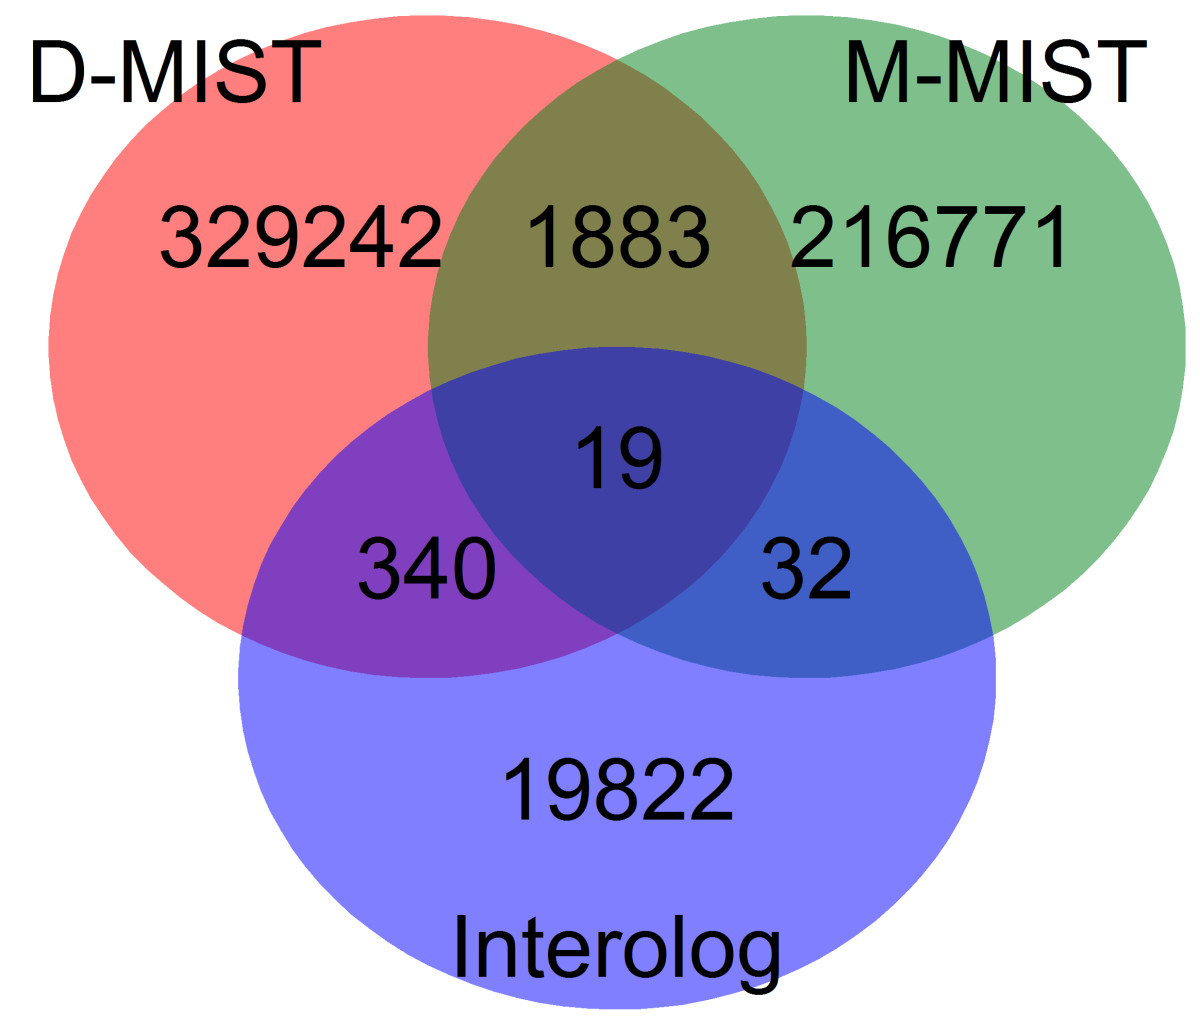 http://static-content.springer.com/image/art%3A10.1186%2F1477-5956-10-2/MediaObjects/12953_2011_Article_324_Fig1_HTML.jpg